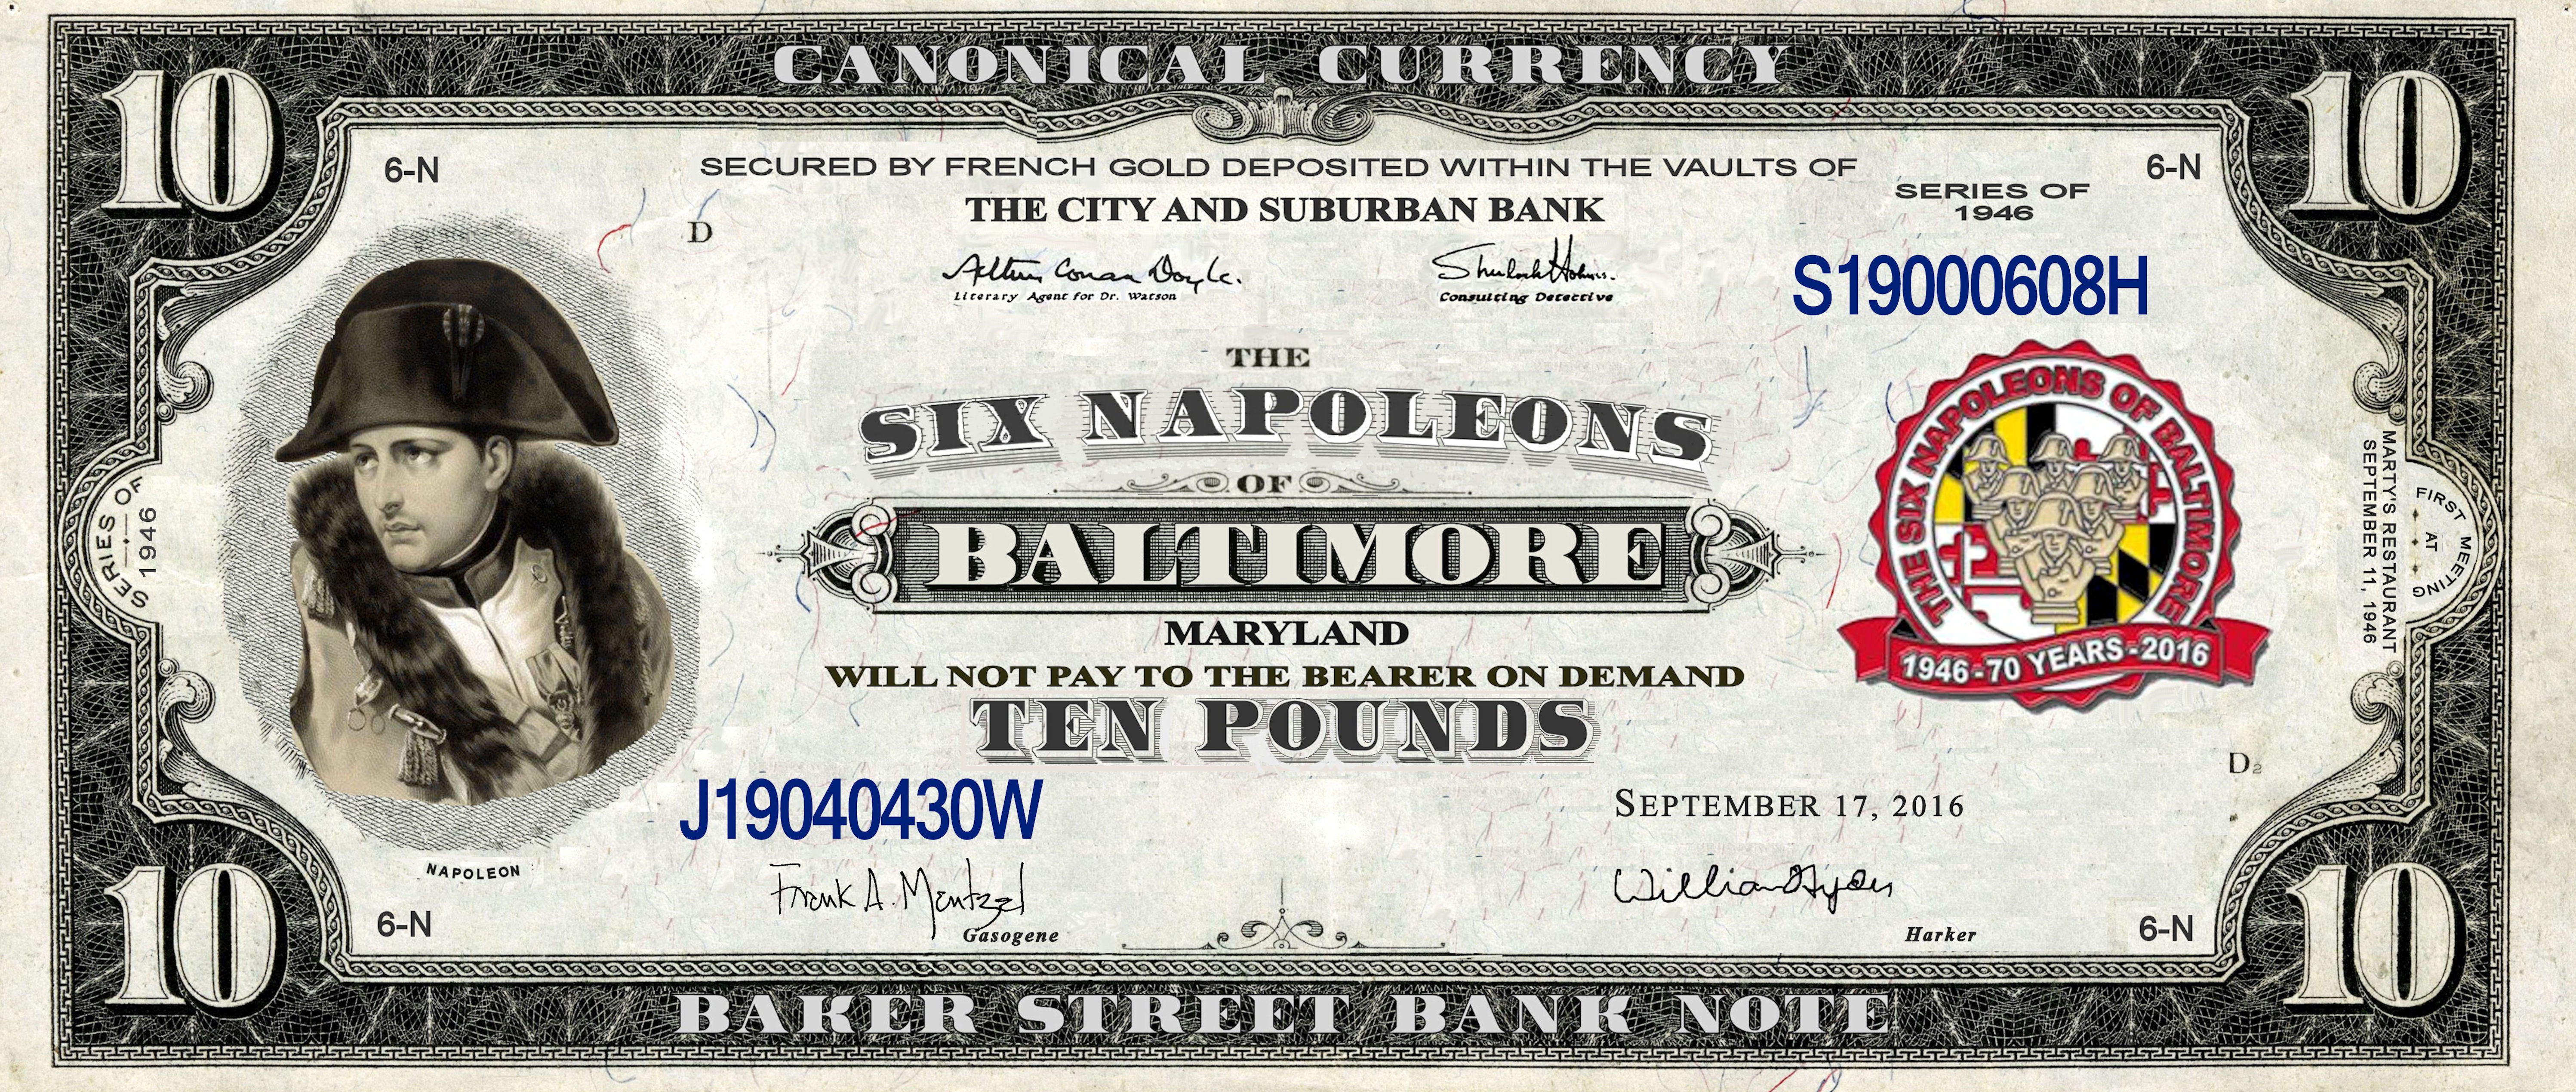 Baltimore's Six Napoleons 70th Anniversary Bank Note